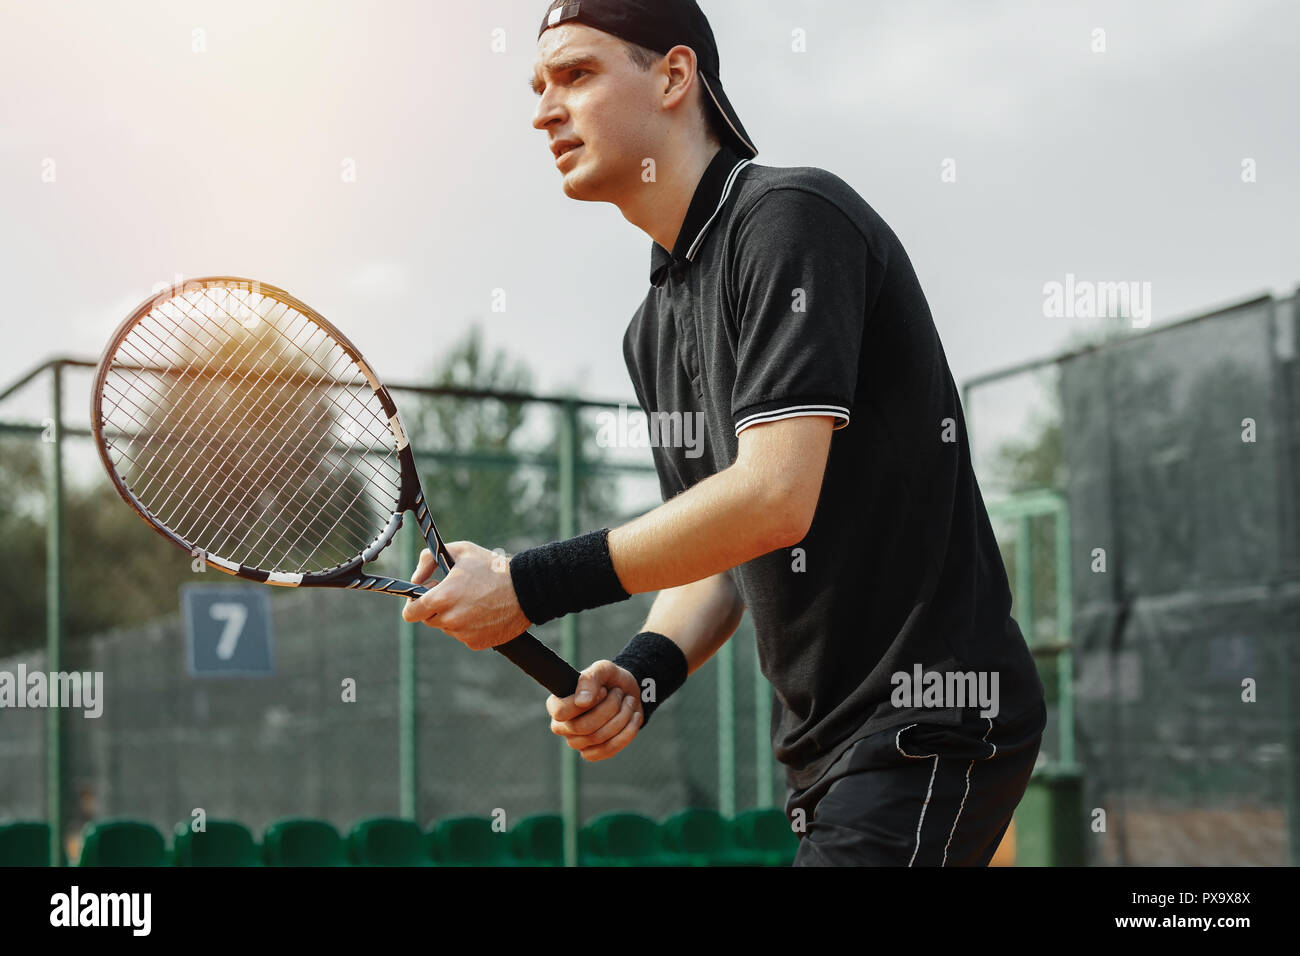 Close up of man holding tennis racket in both hands to straighten strike. - Stock Image